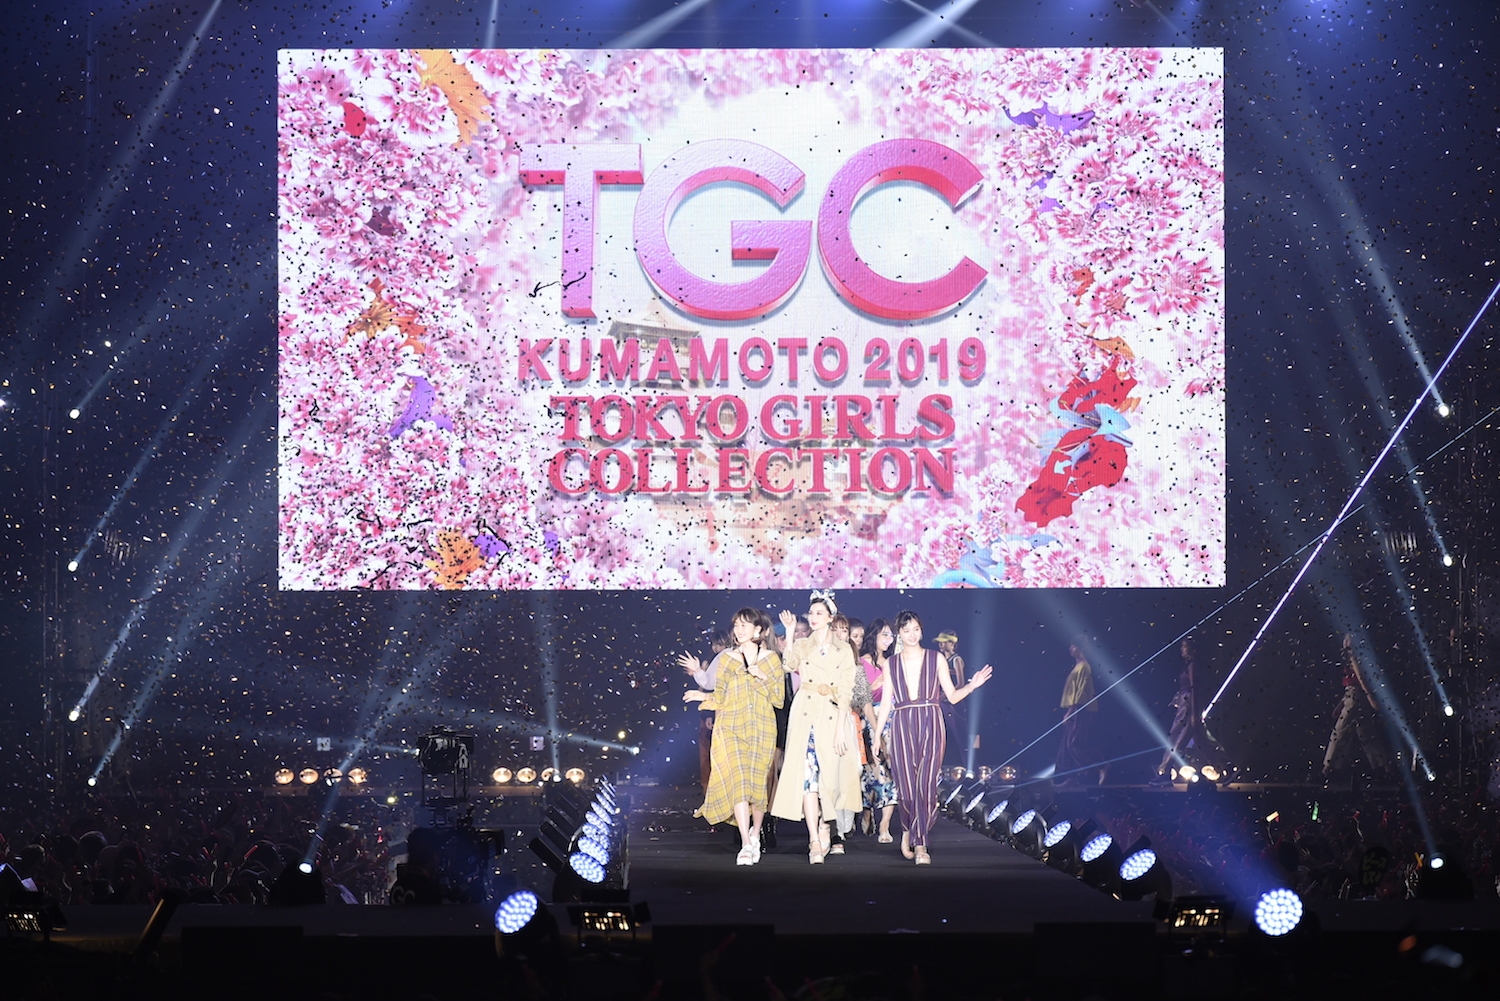 ©TGC KUMAMOTO 2019 by TOKYO GIRLS COLLECTION